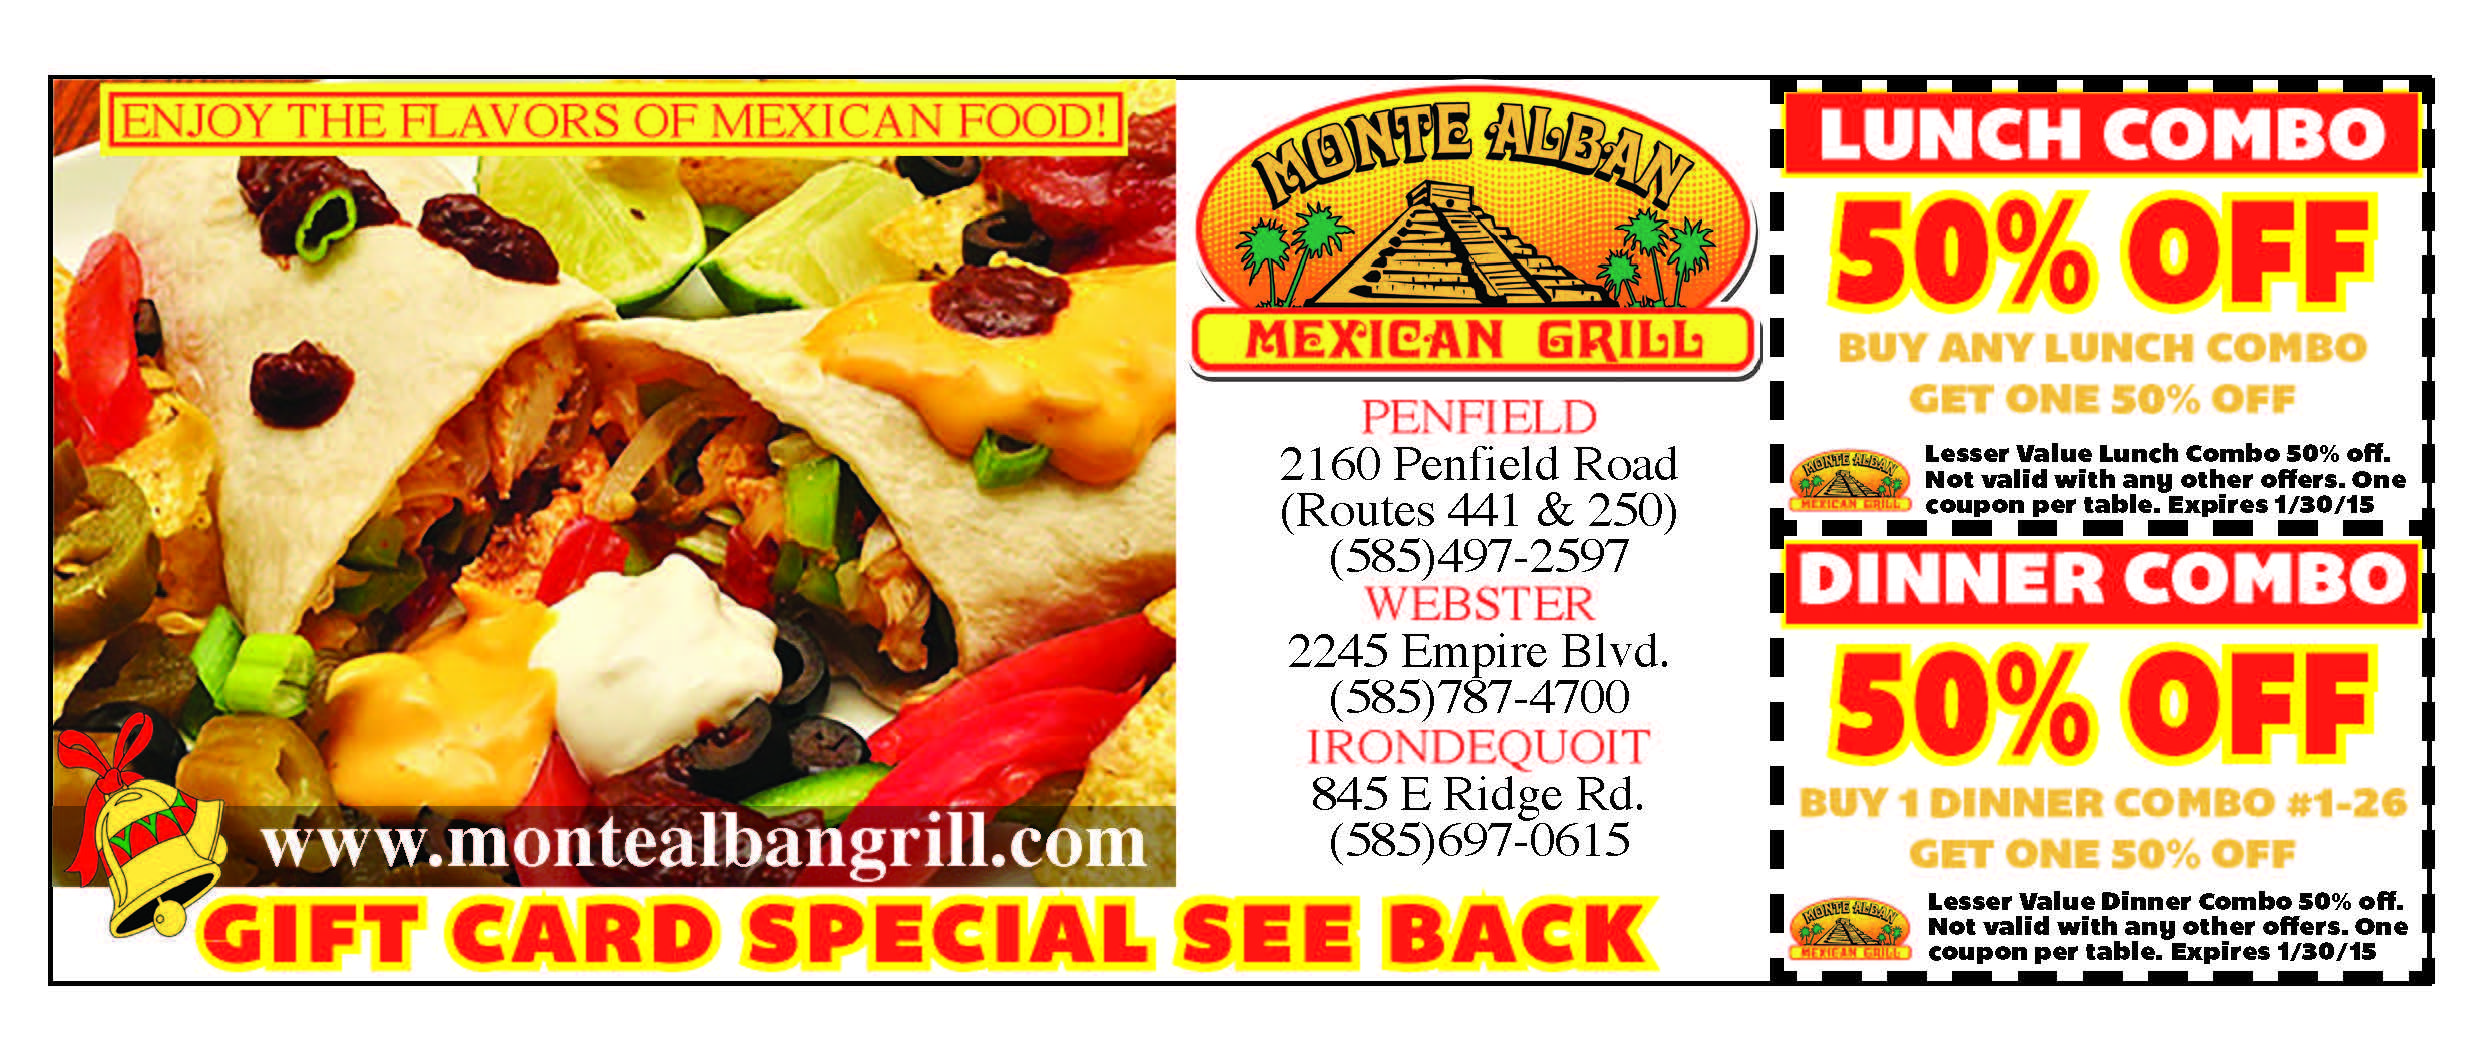 Enjoy huge savings from the delicious Monte Alban Mexican Grille!